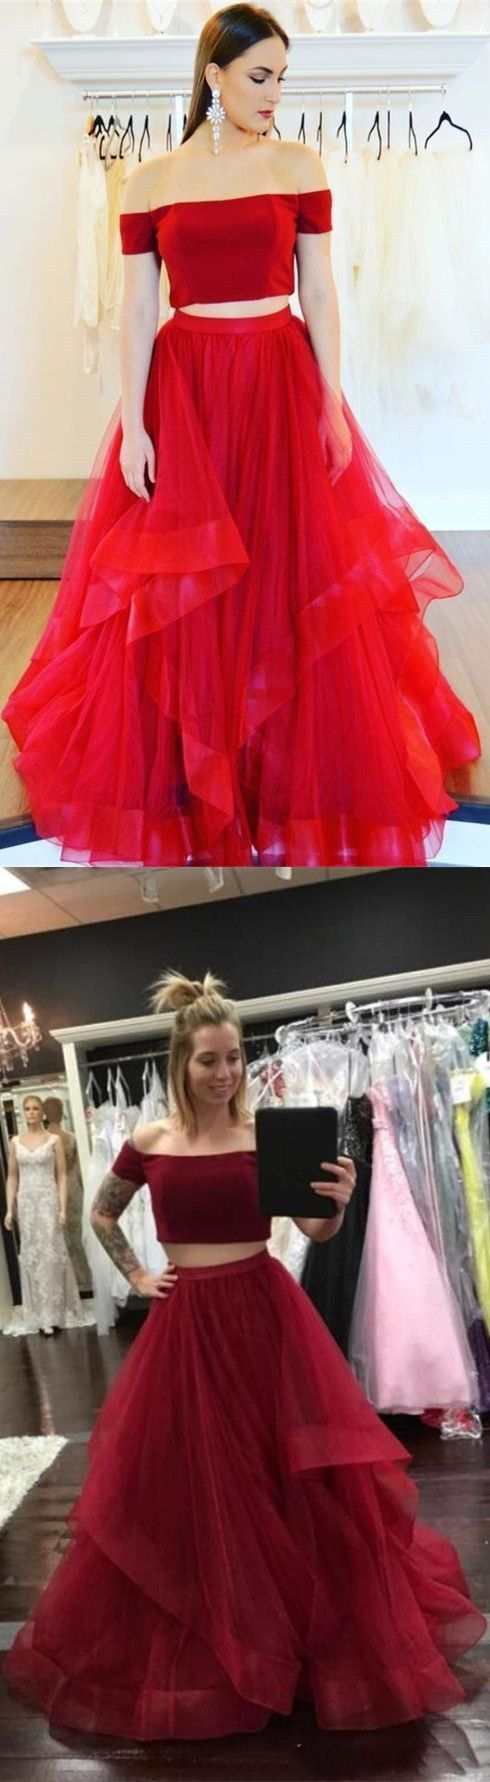 Simple red tulle long prom dresses,off the shoulder graduation party gowns,modest senior prom dresses for teens – Haute n Sleek Couture